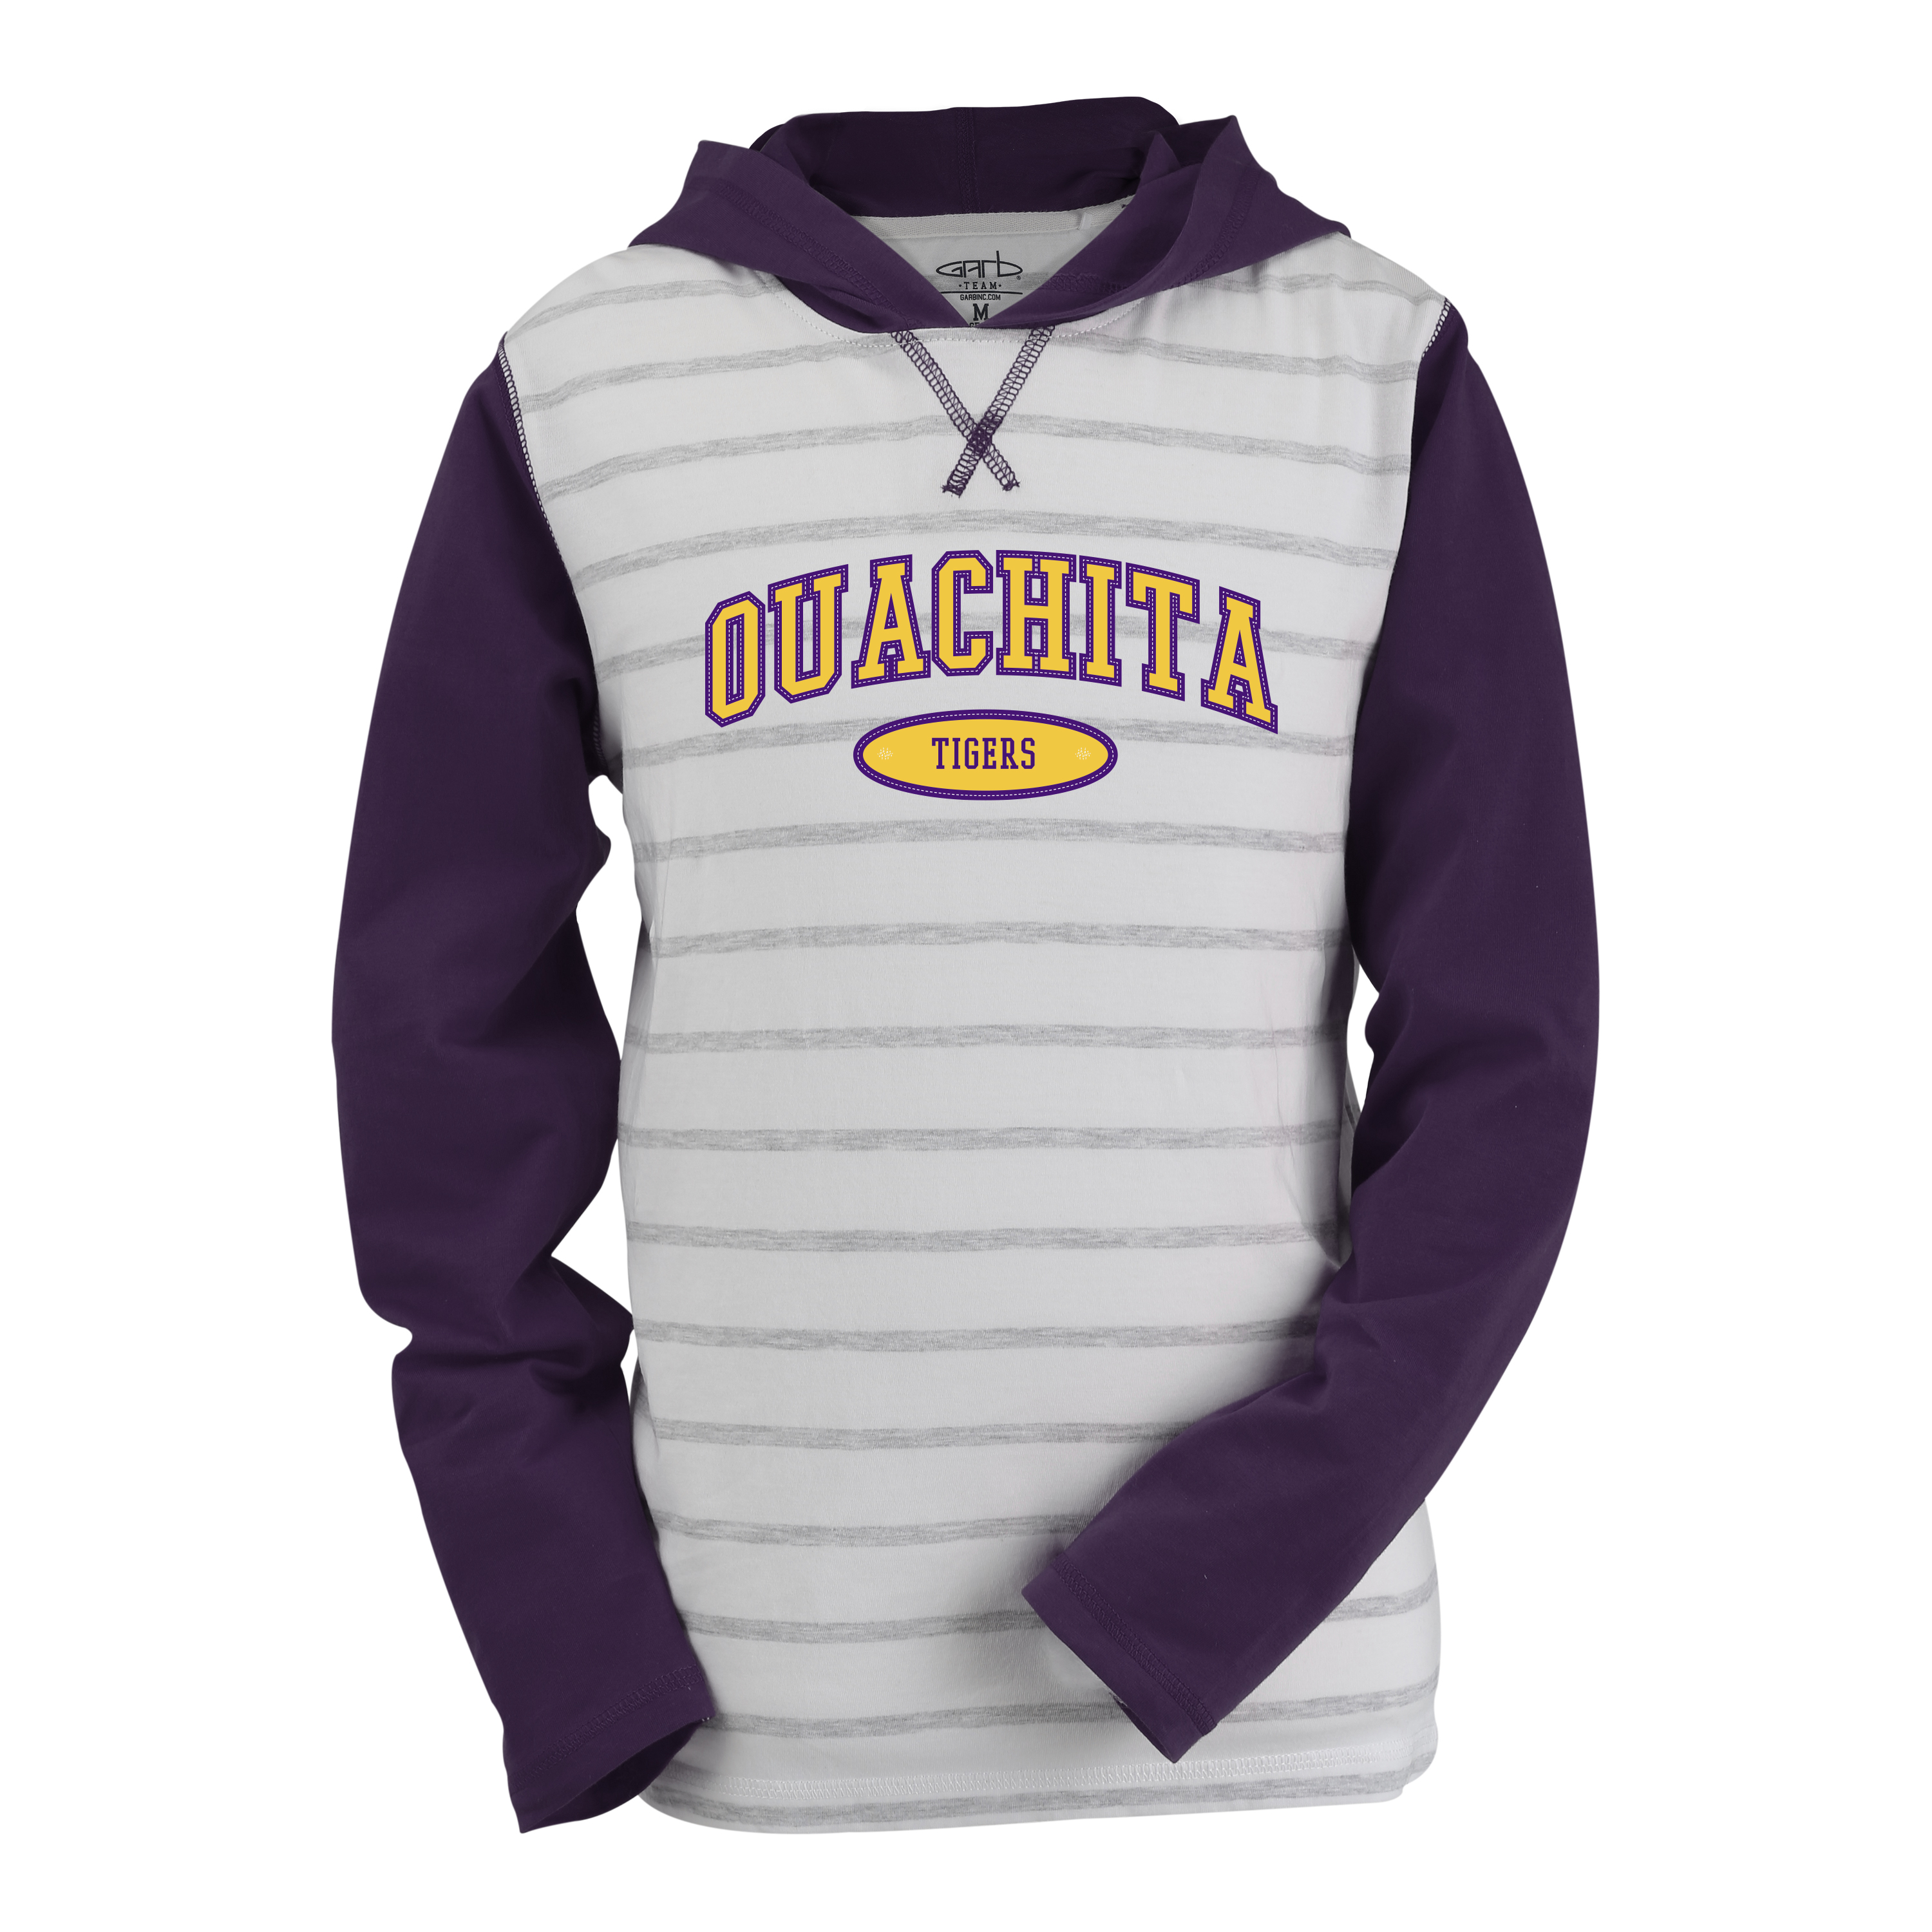 OUACHITA TIGERS COURT STRIPE HOODED PULLOVER - YOUTH